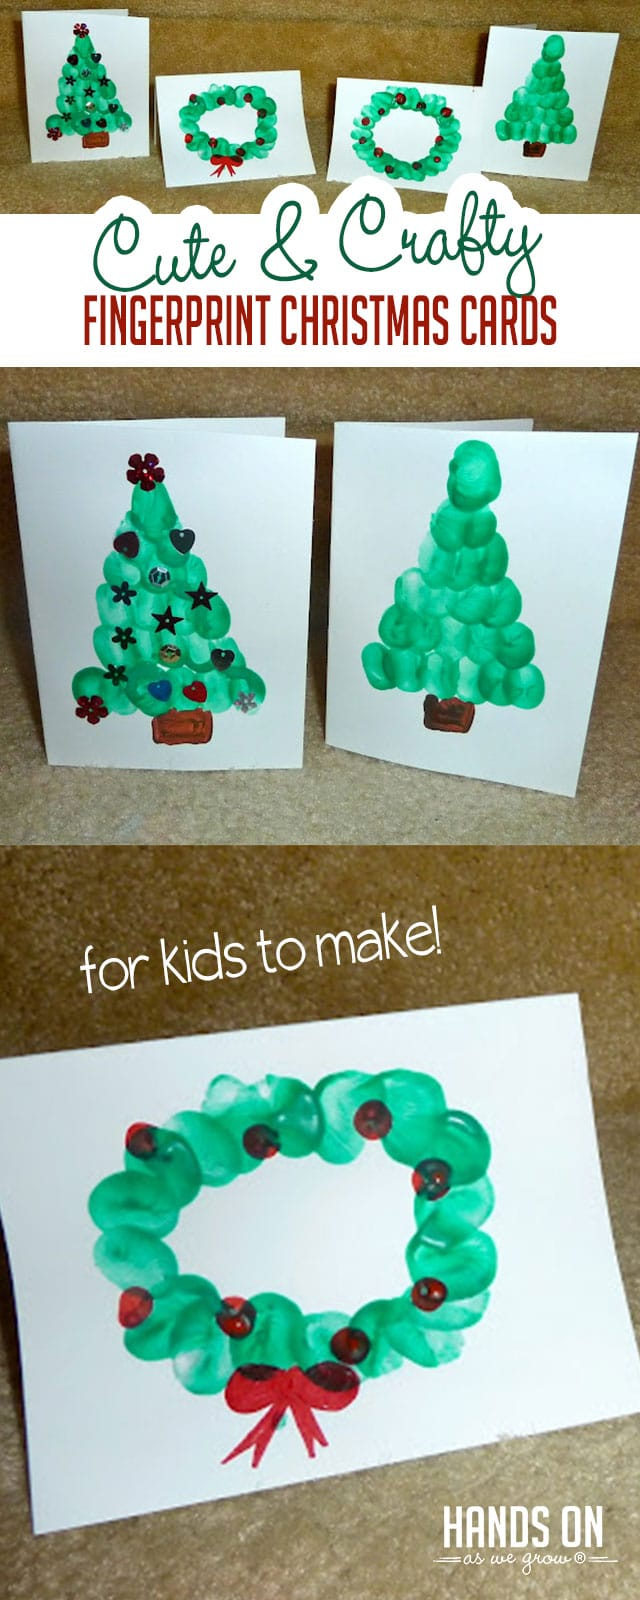 Cute & Crafty Fingerprint Christmas Cards for Kids to Make | HOAWG